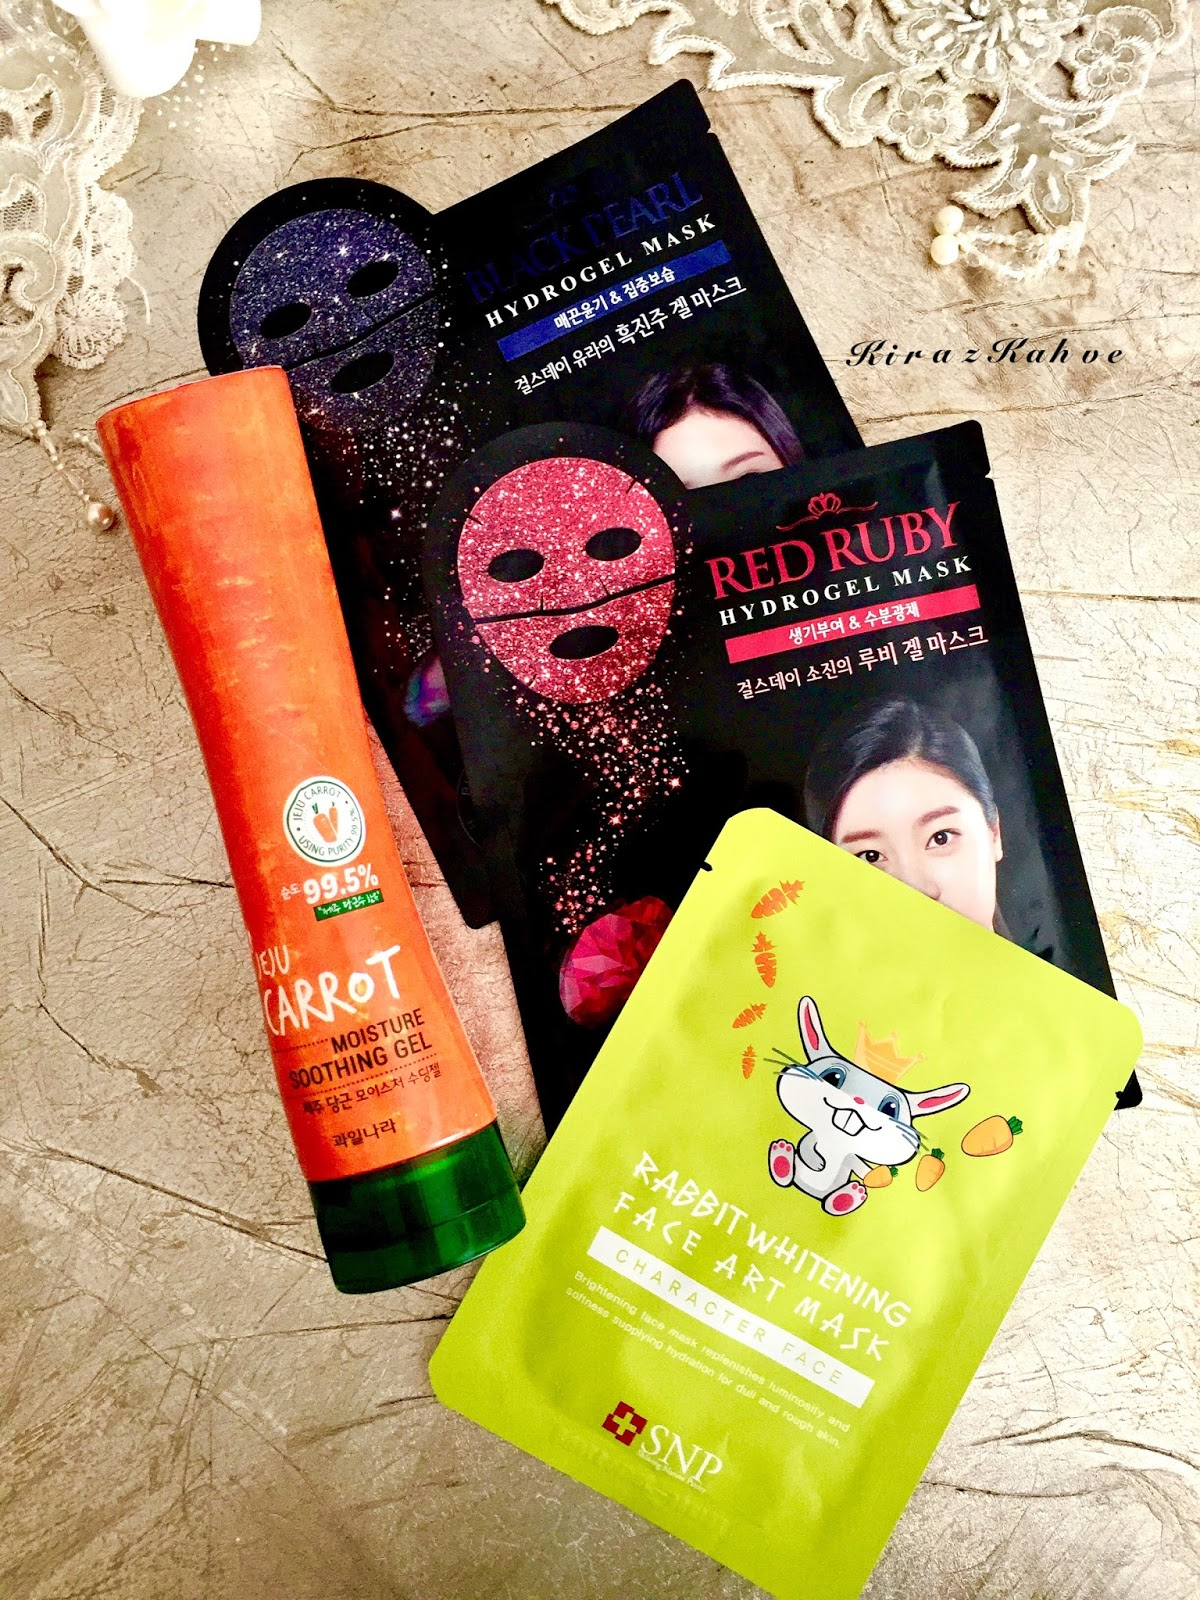 Jeju Carrot Moisture Soothing Gel - Hydrogel Mask - Rabbit Whitening Face Art Mask İncelemesi